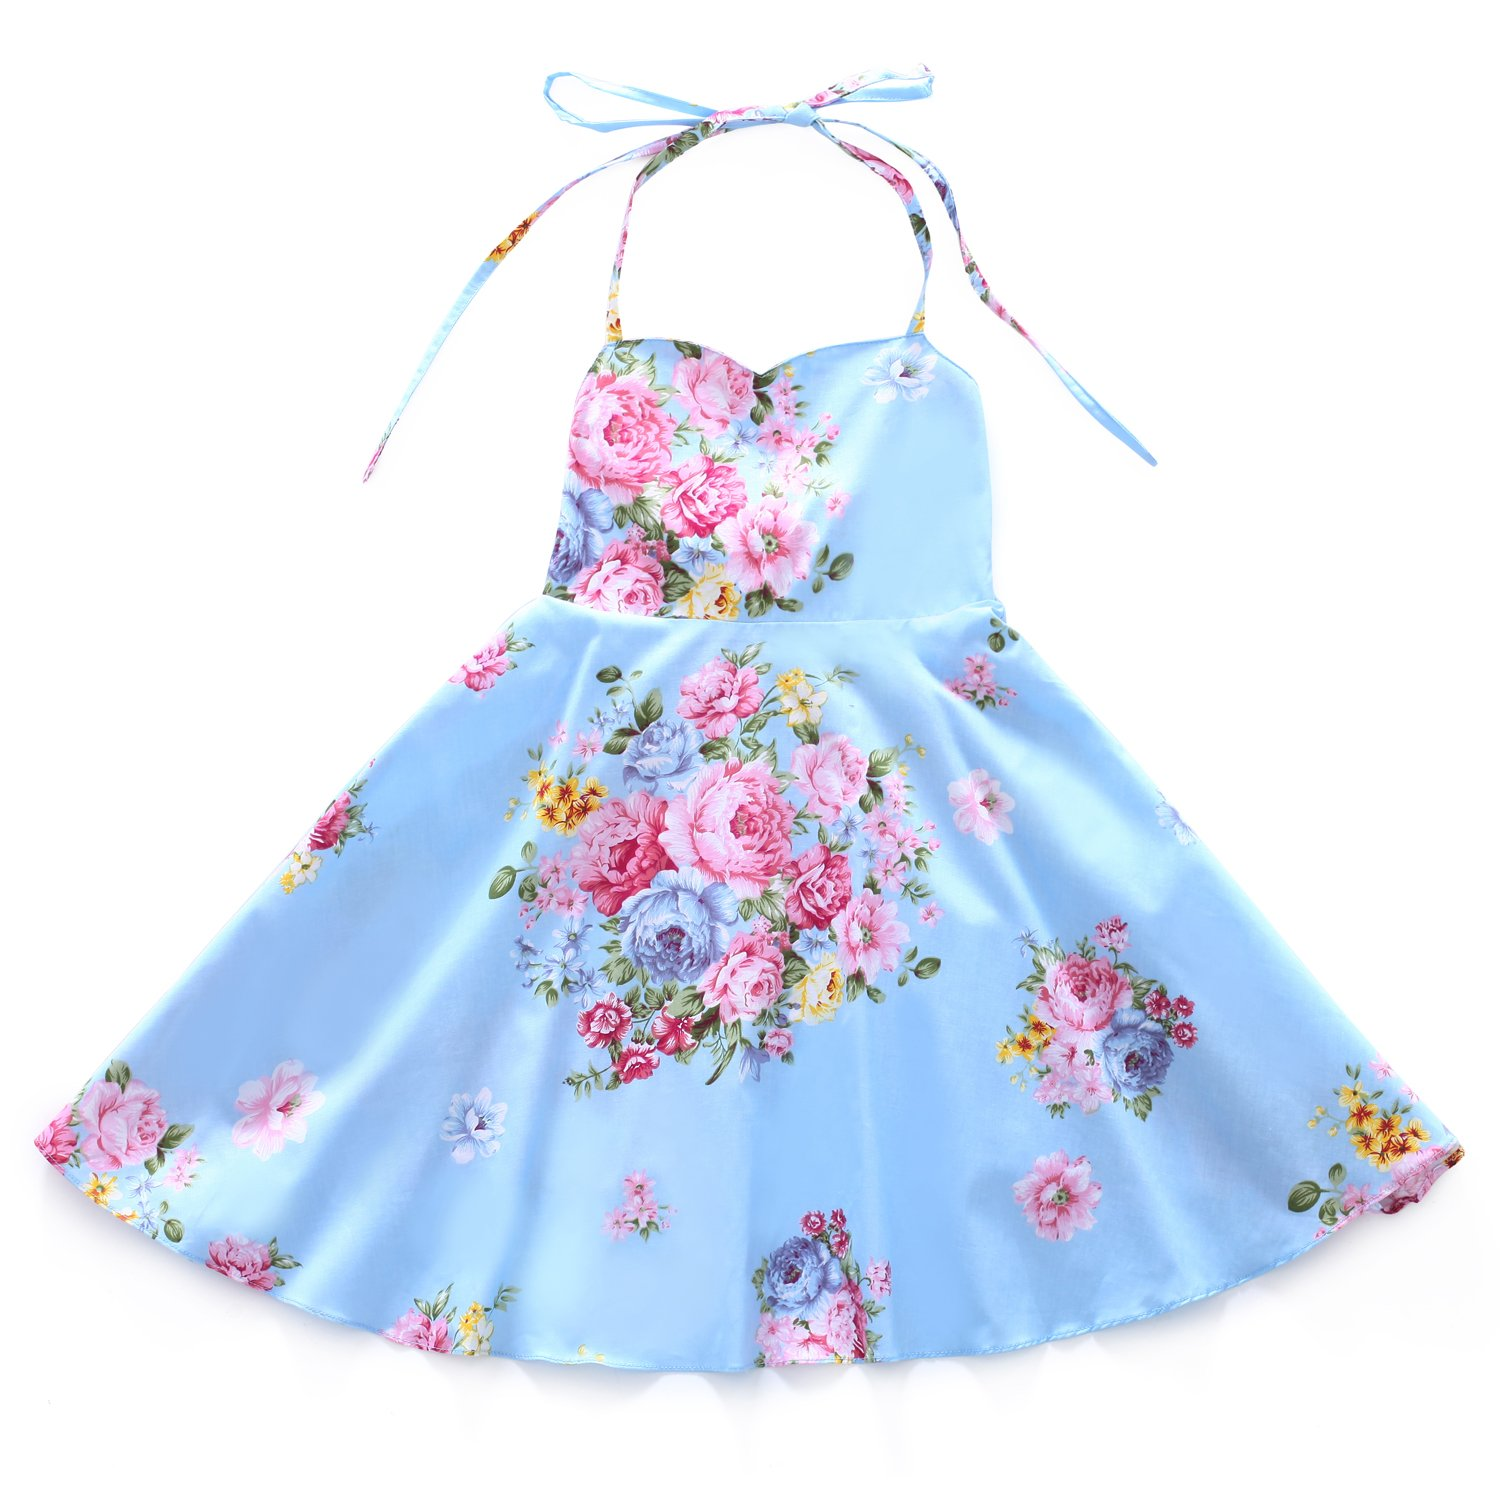 Flofallzique Floral Girls Dress Vintage Summer Flower Baby Girls Clothes Holiday Party Toddler Dress (7, Blue)